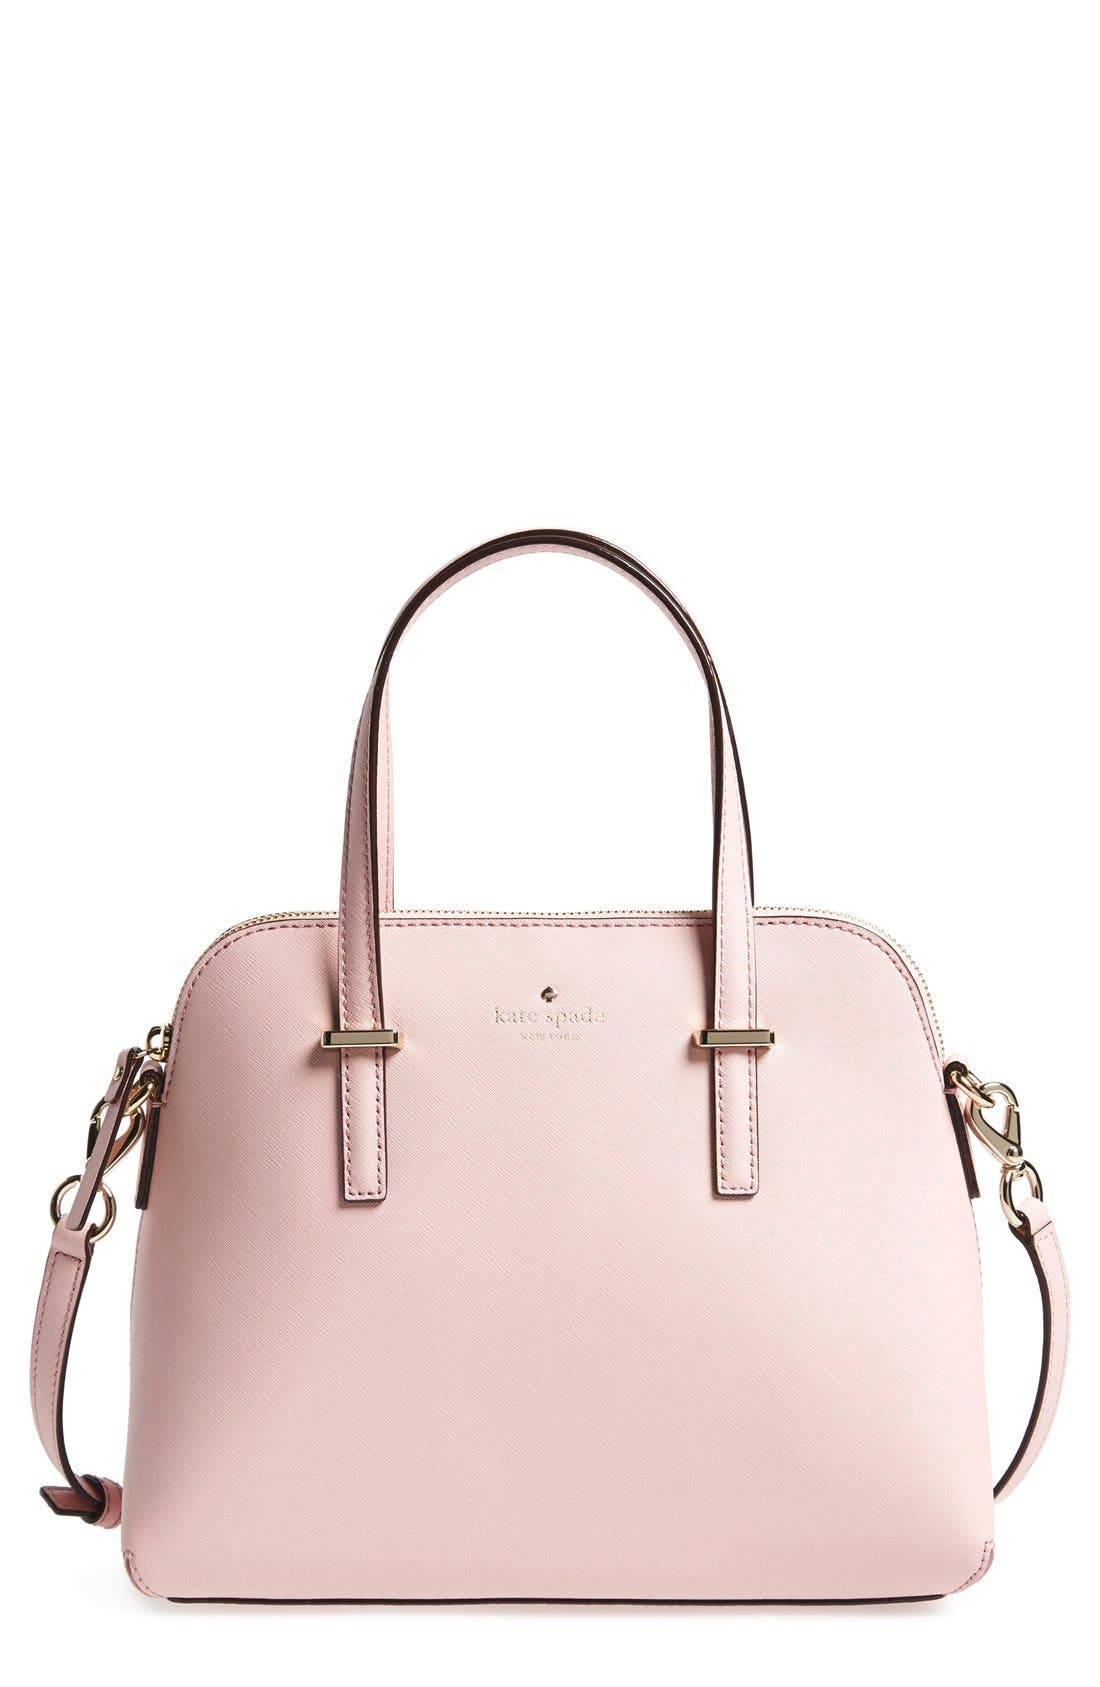 Main Image - kate spade new york 'cedar street - maise' leather satchel